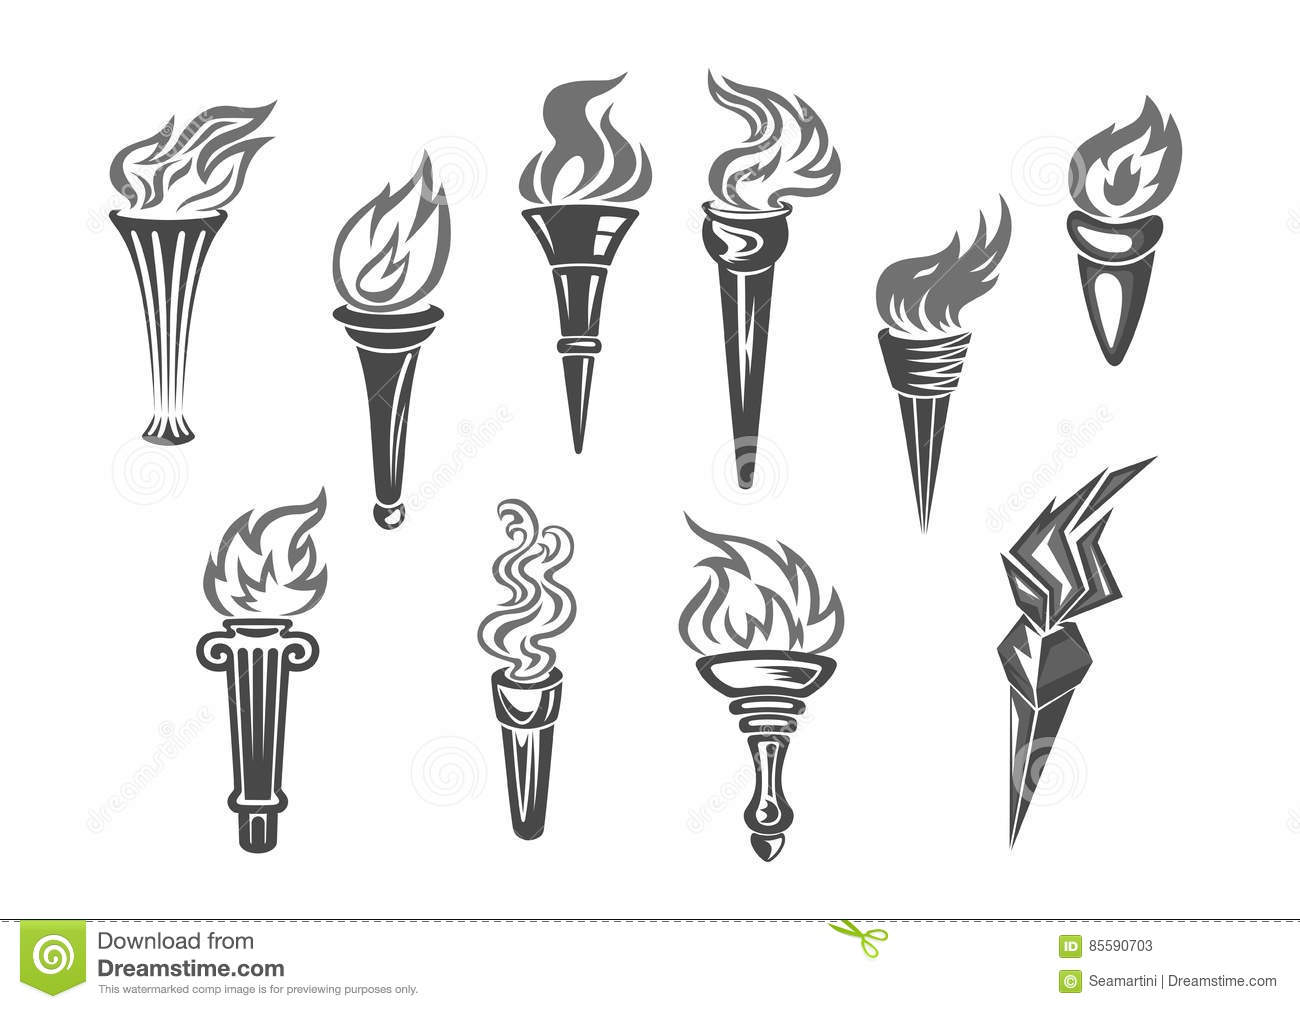 Oplympic Games Flame Vector Isolated Icons Set Stock Vector